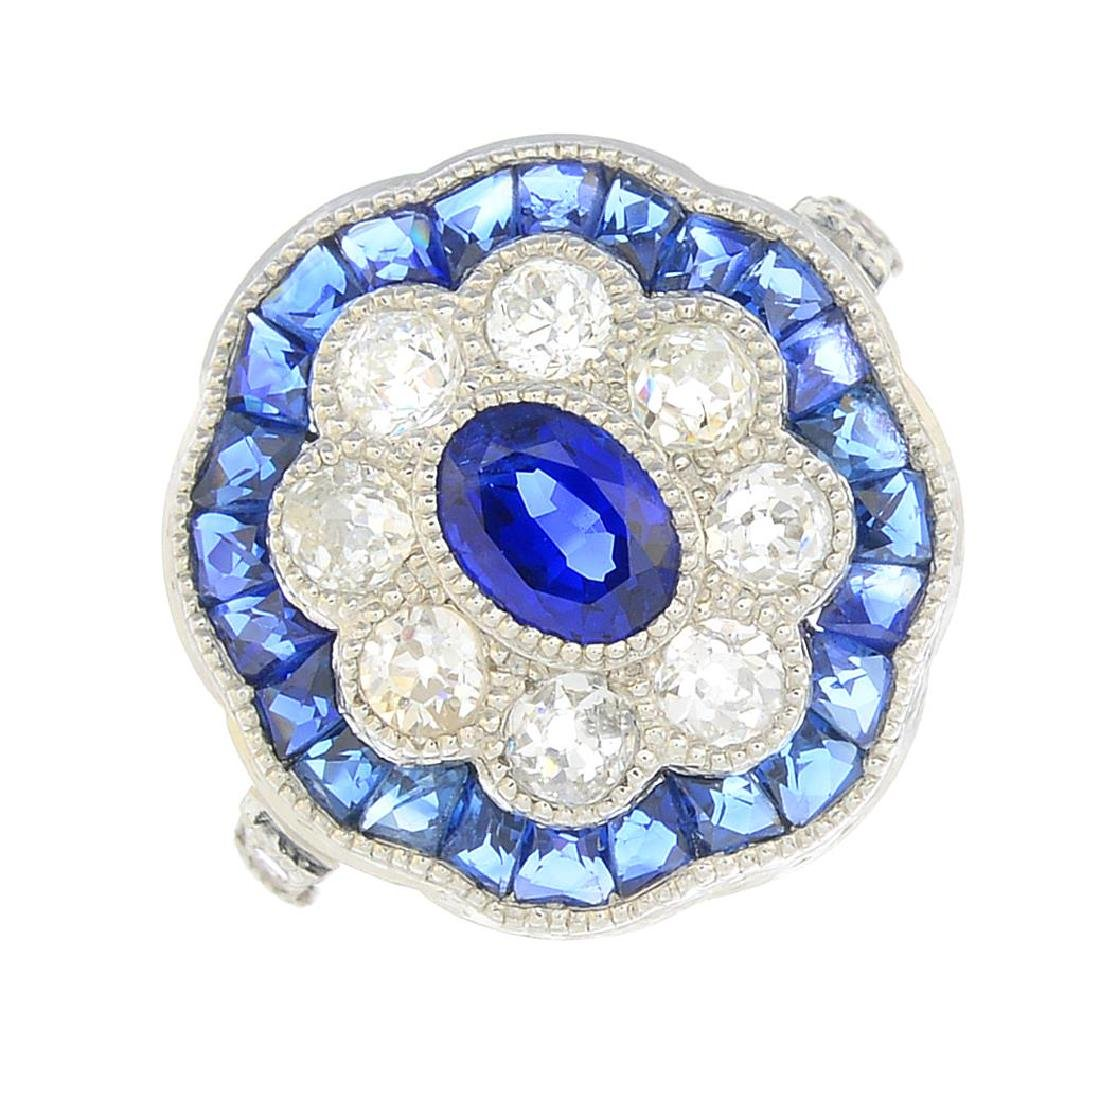 A sapphire and diamond dress ring. The oval-shape